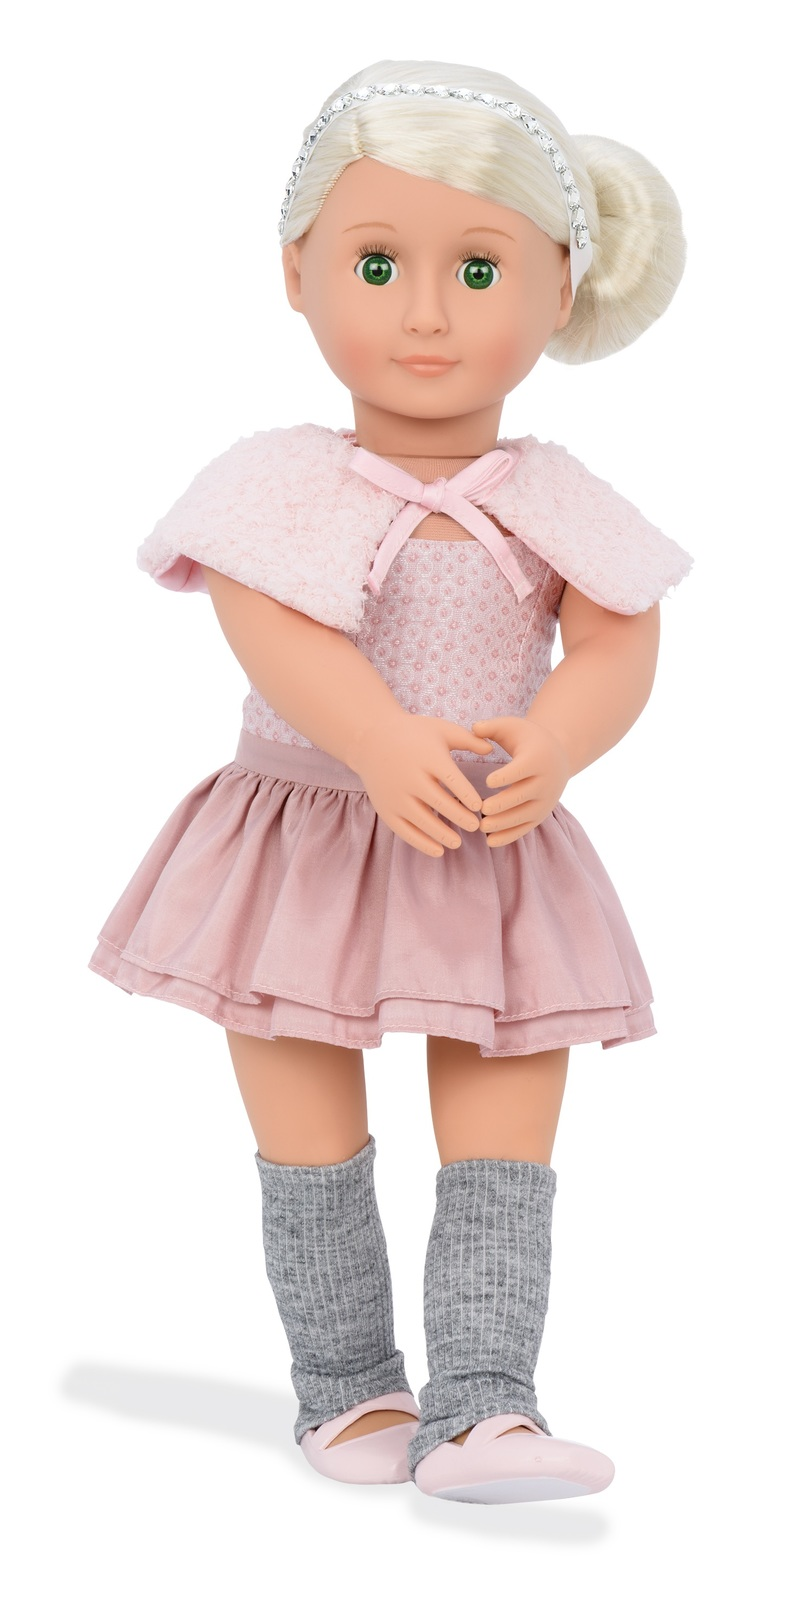 OUR GENERATION 18 INCH LAKE DOLL WITH 5 ACCESSORIES